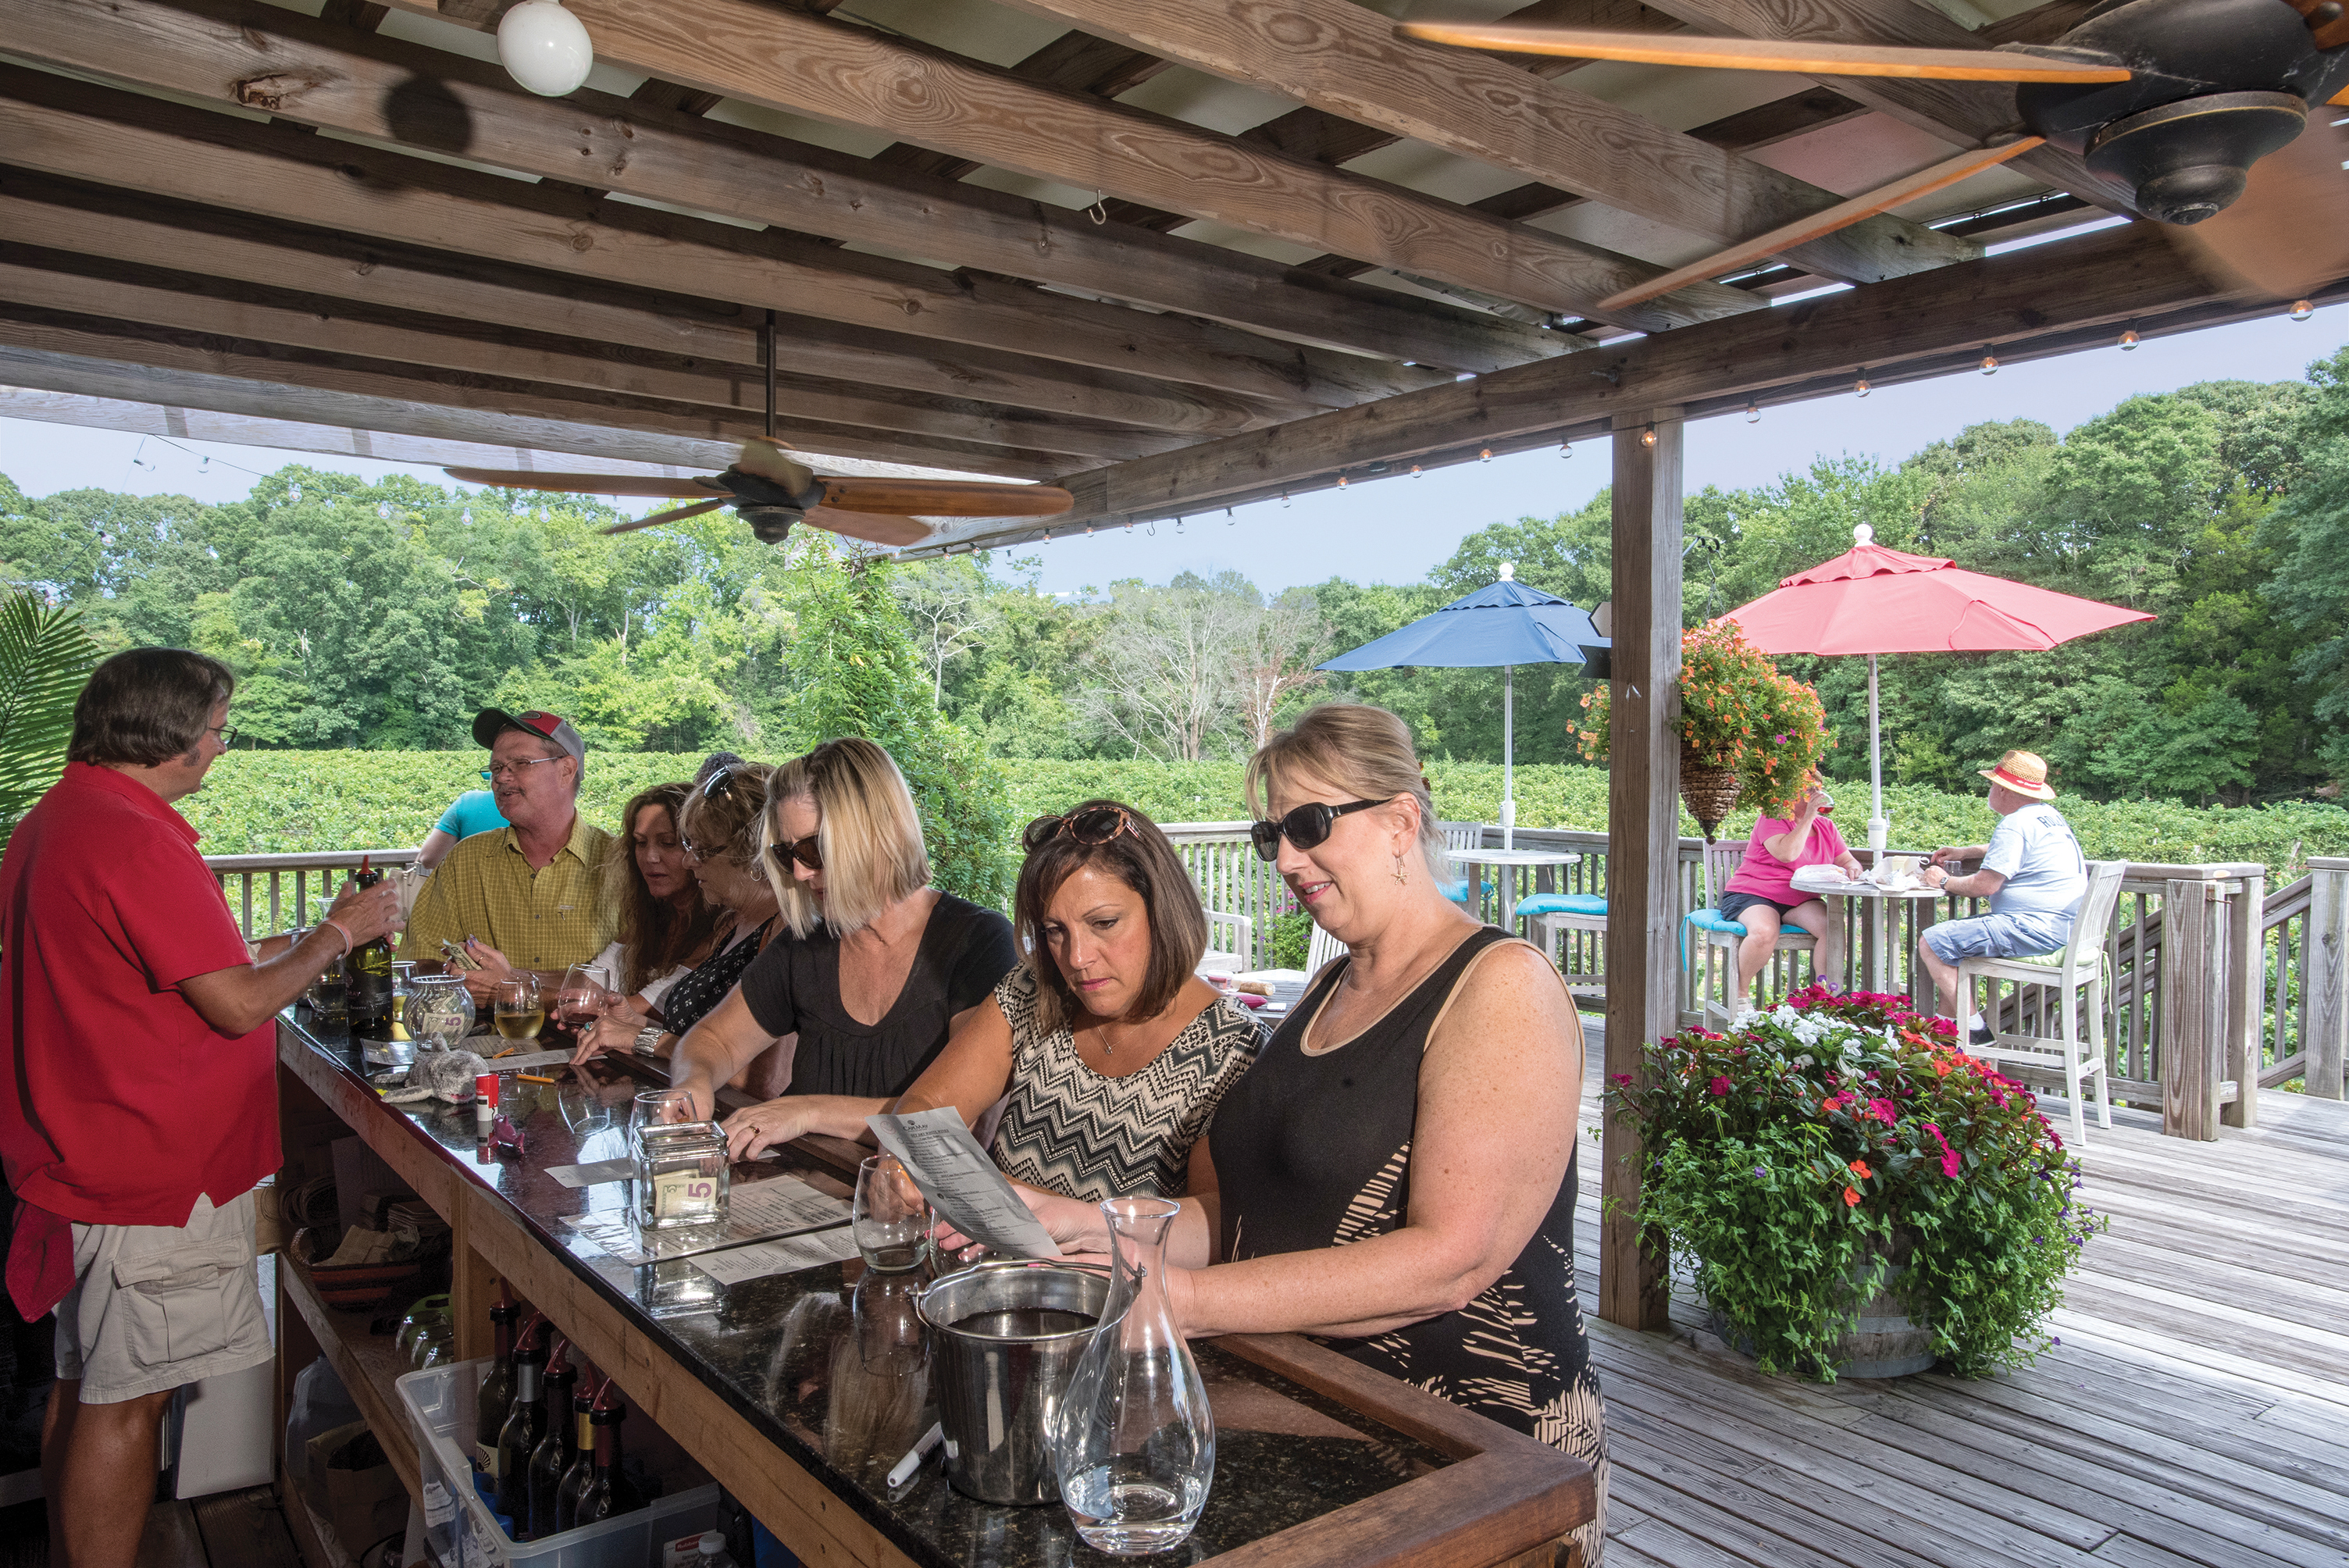 Cape May Winery Events Calendar